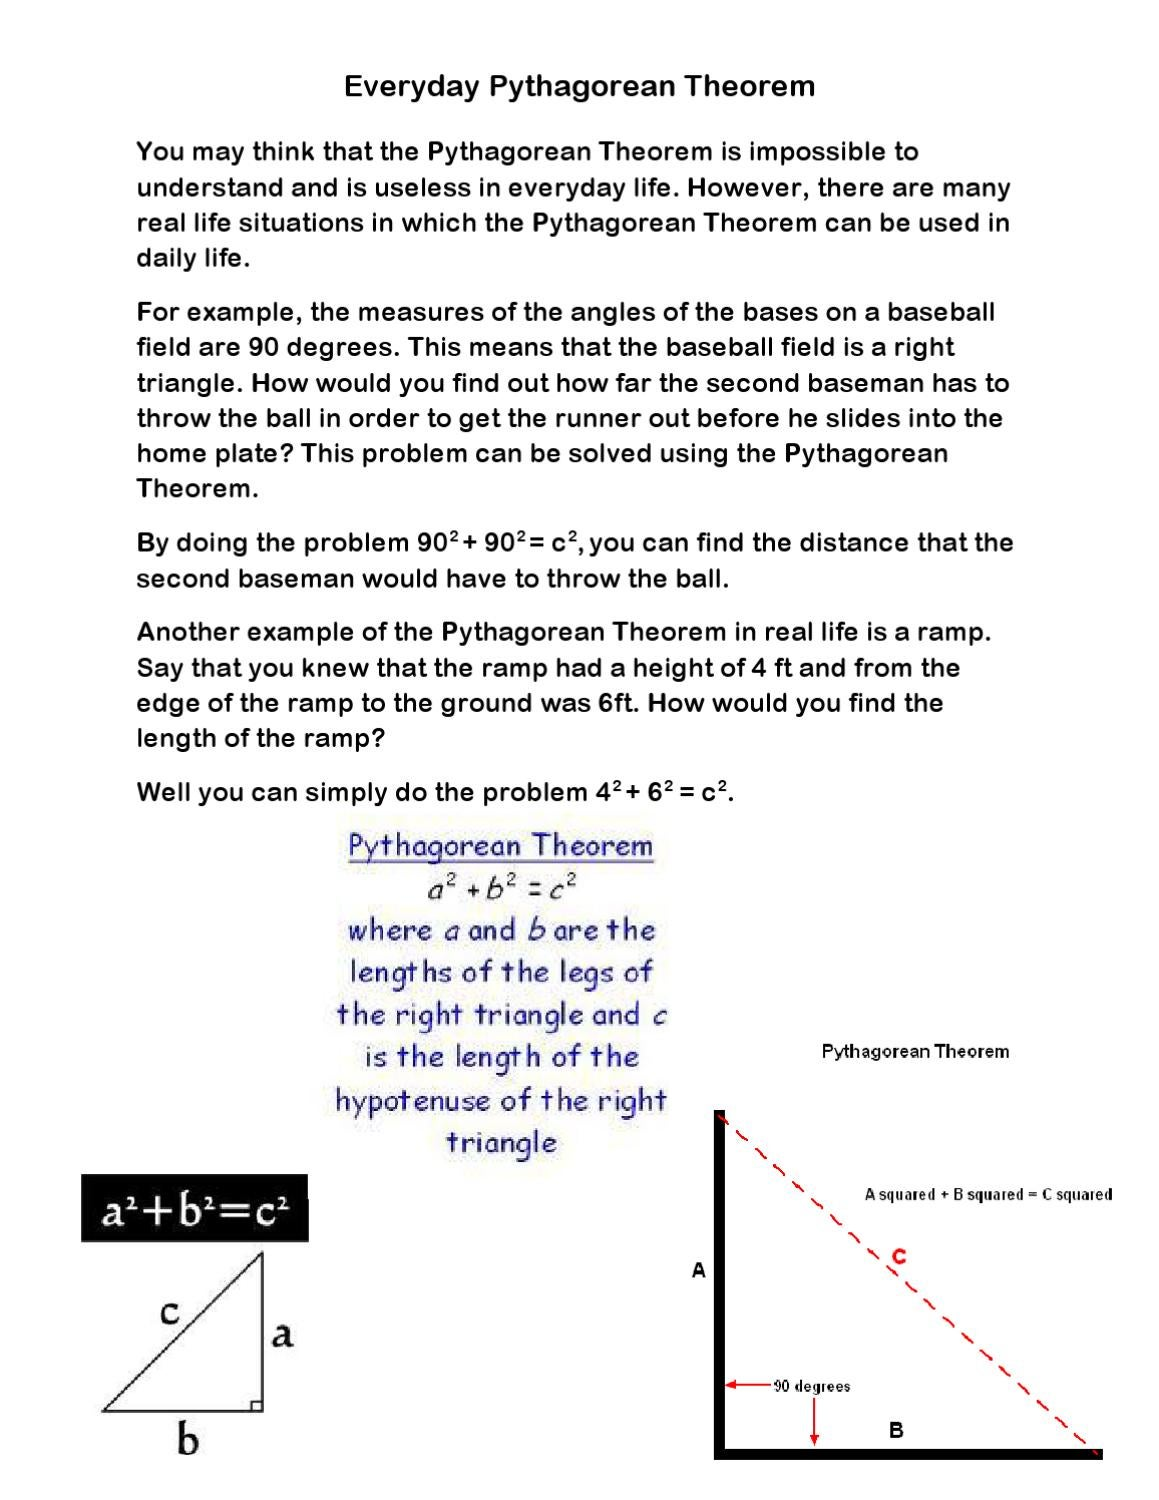 Everyday Pythagorean Theorem by Darklight Corvexus - Issuu